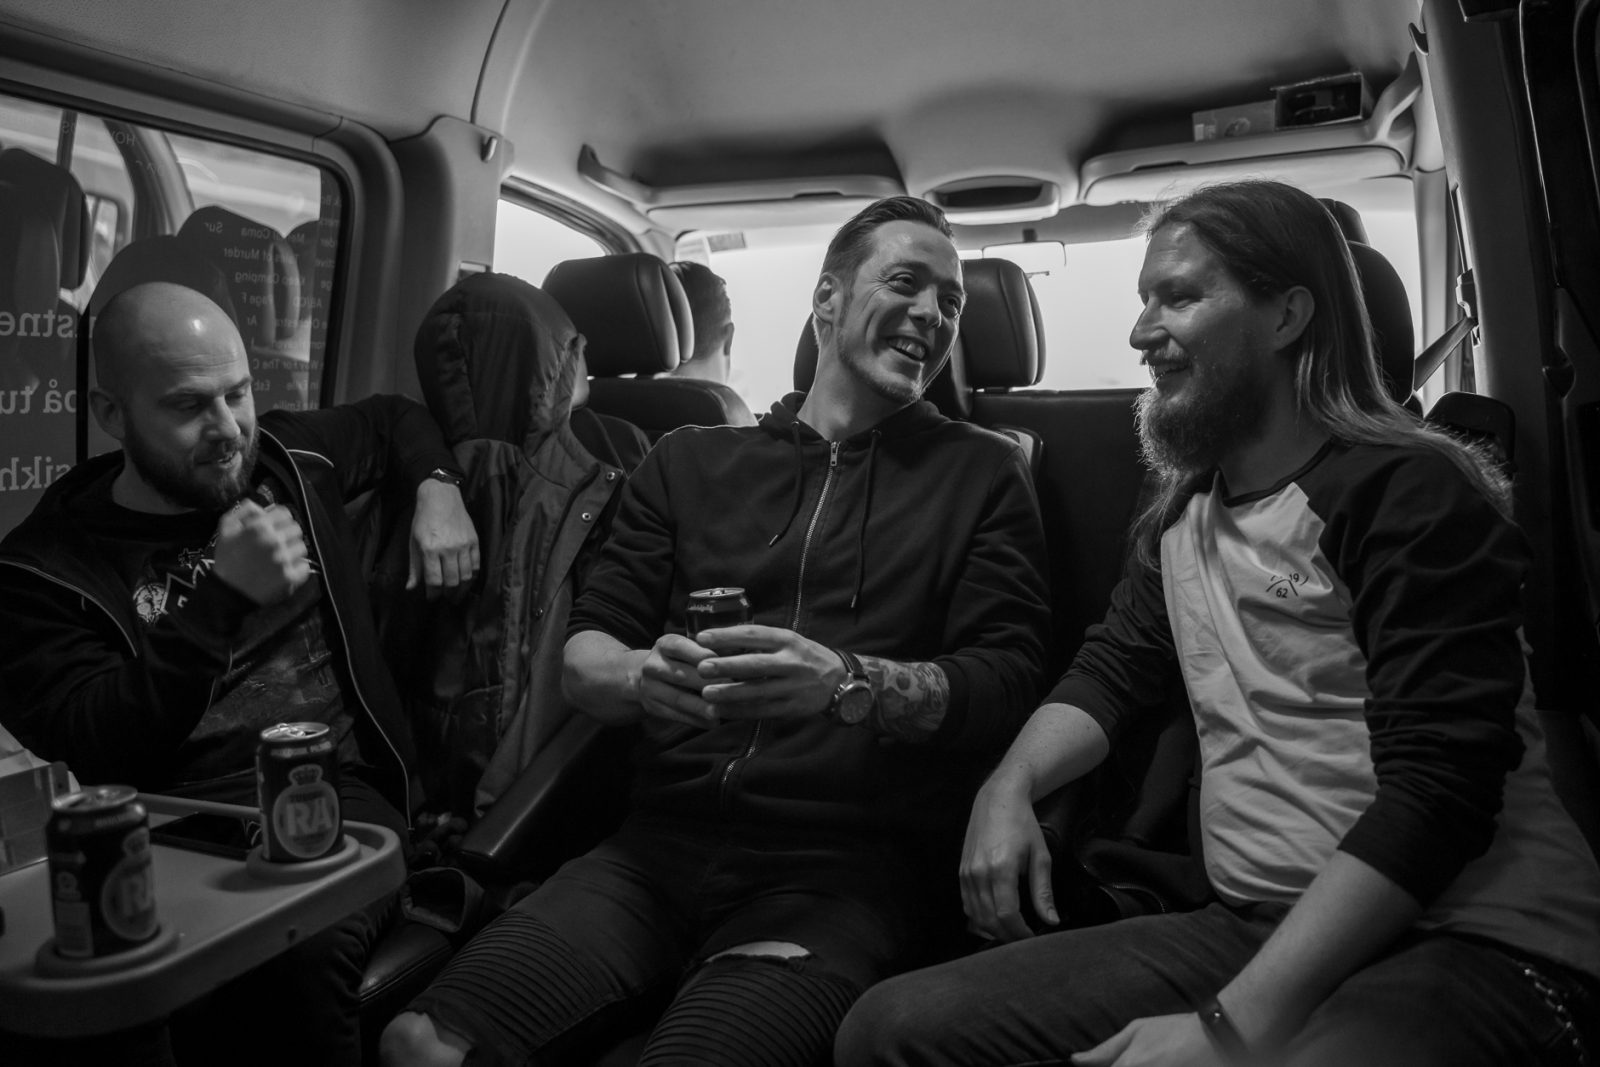 Concert Photography: The Tuborg Music help band bus: Electric Hellrides Casper, Brian and Nicklas